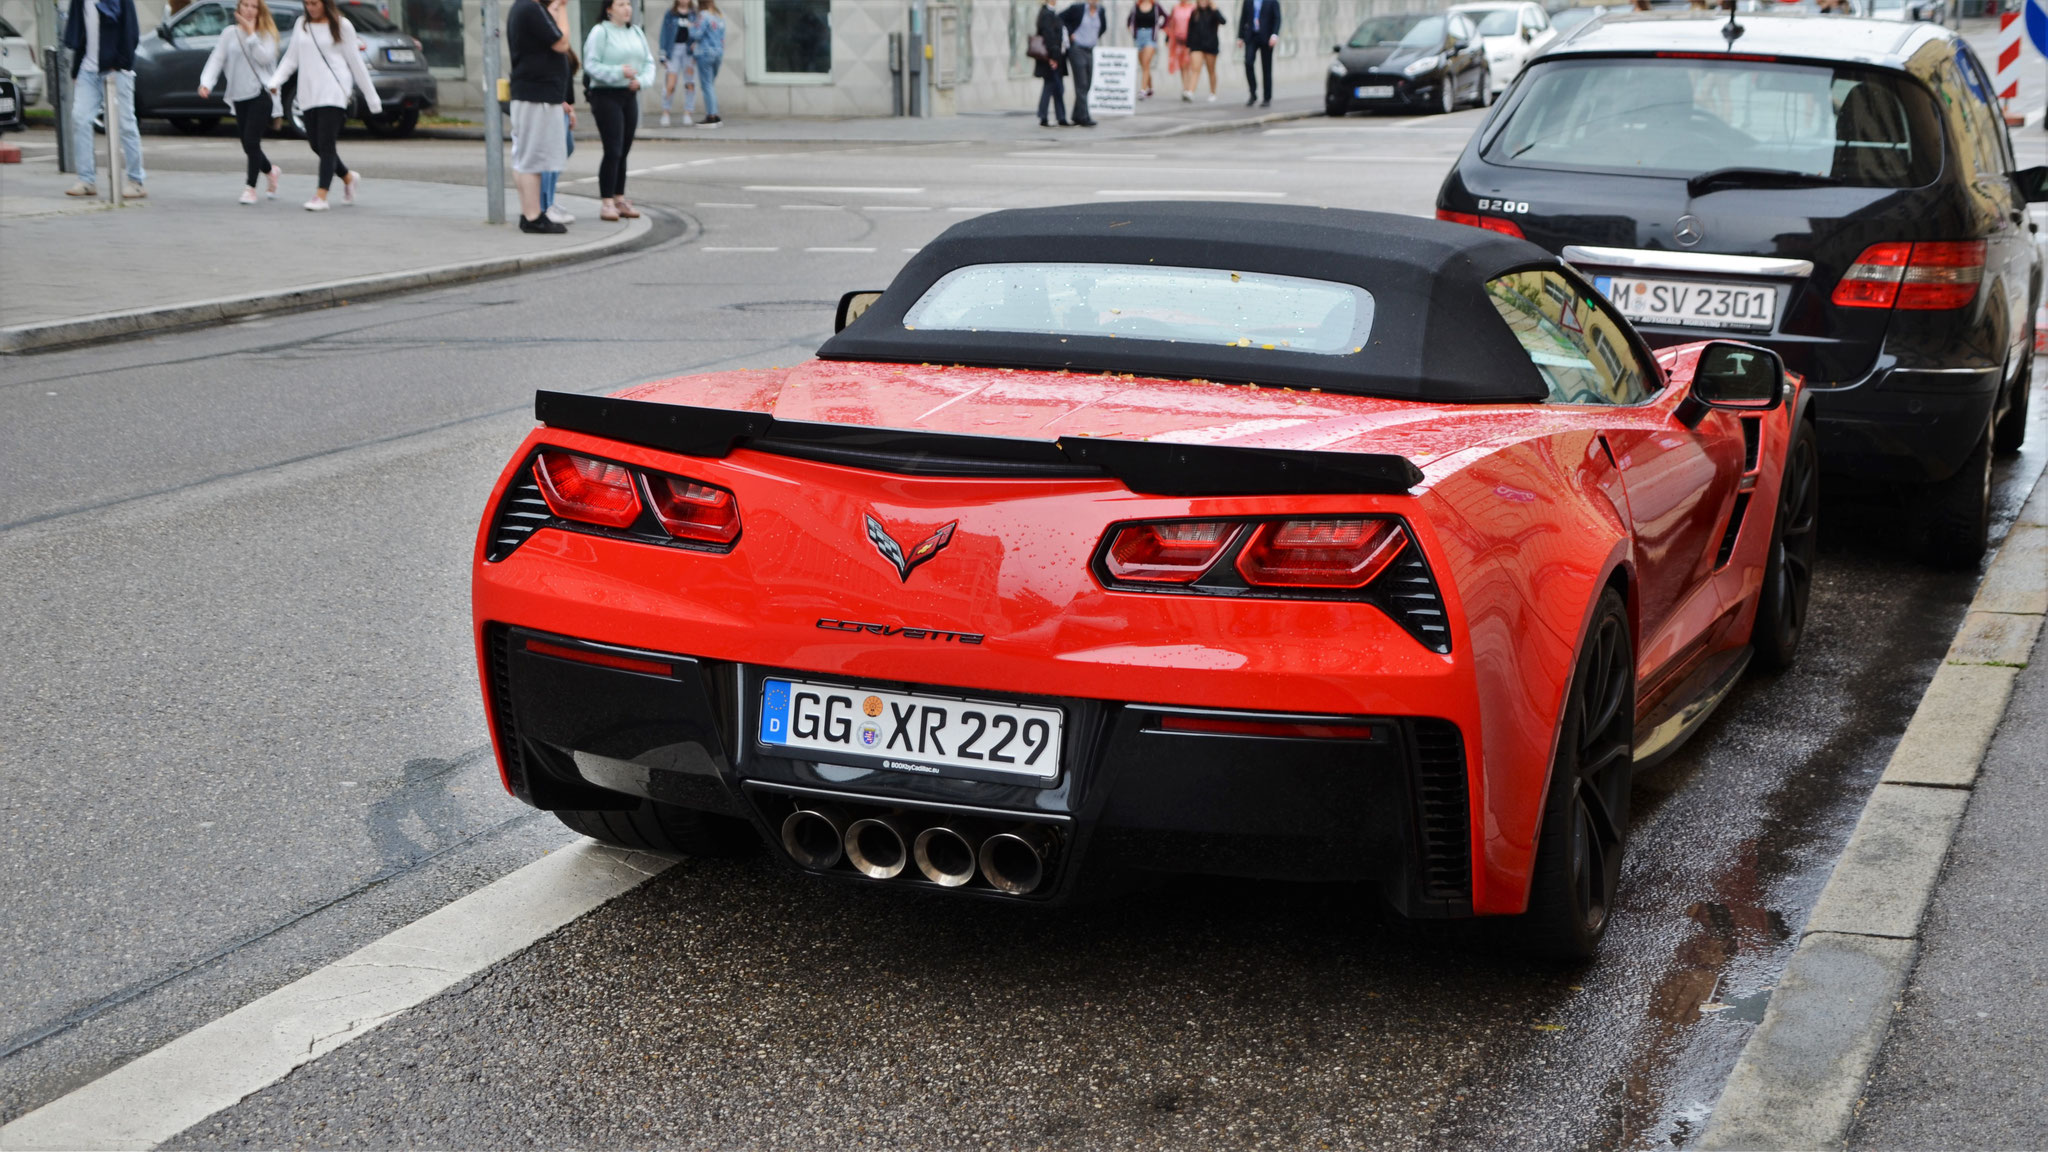 Chevrolet Corvette C7 Grand Sport Convertible - GG-XR-229